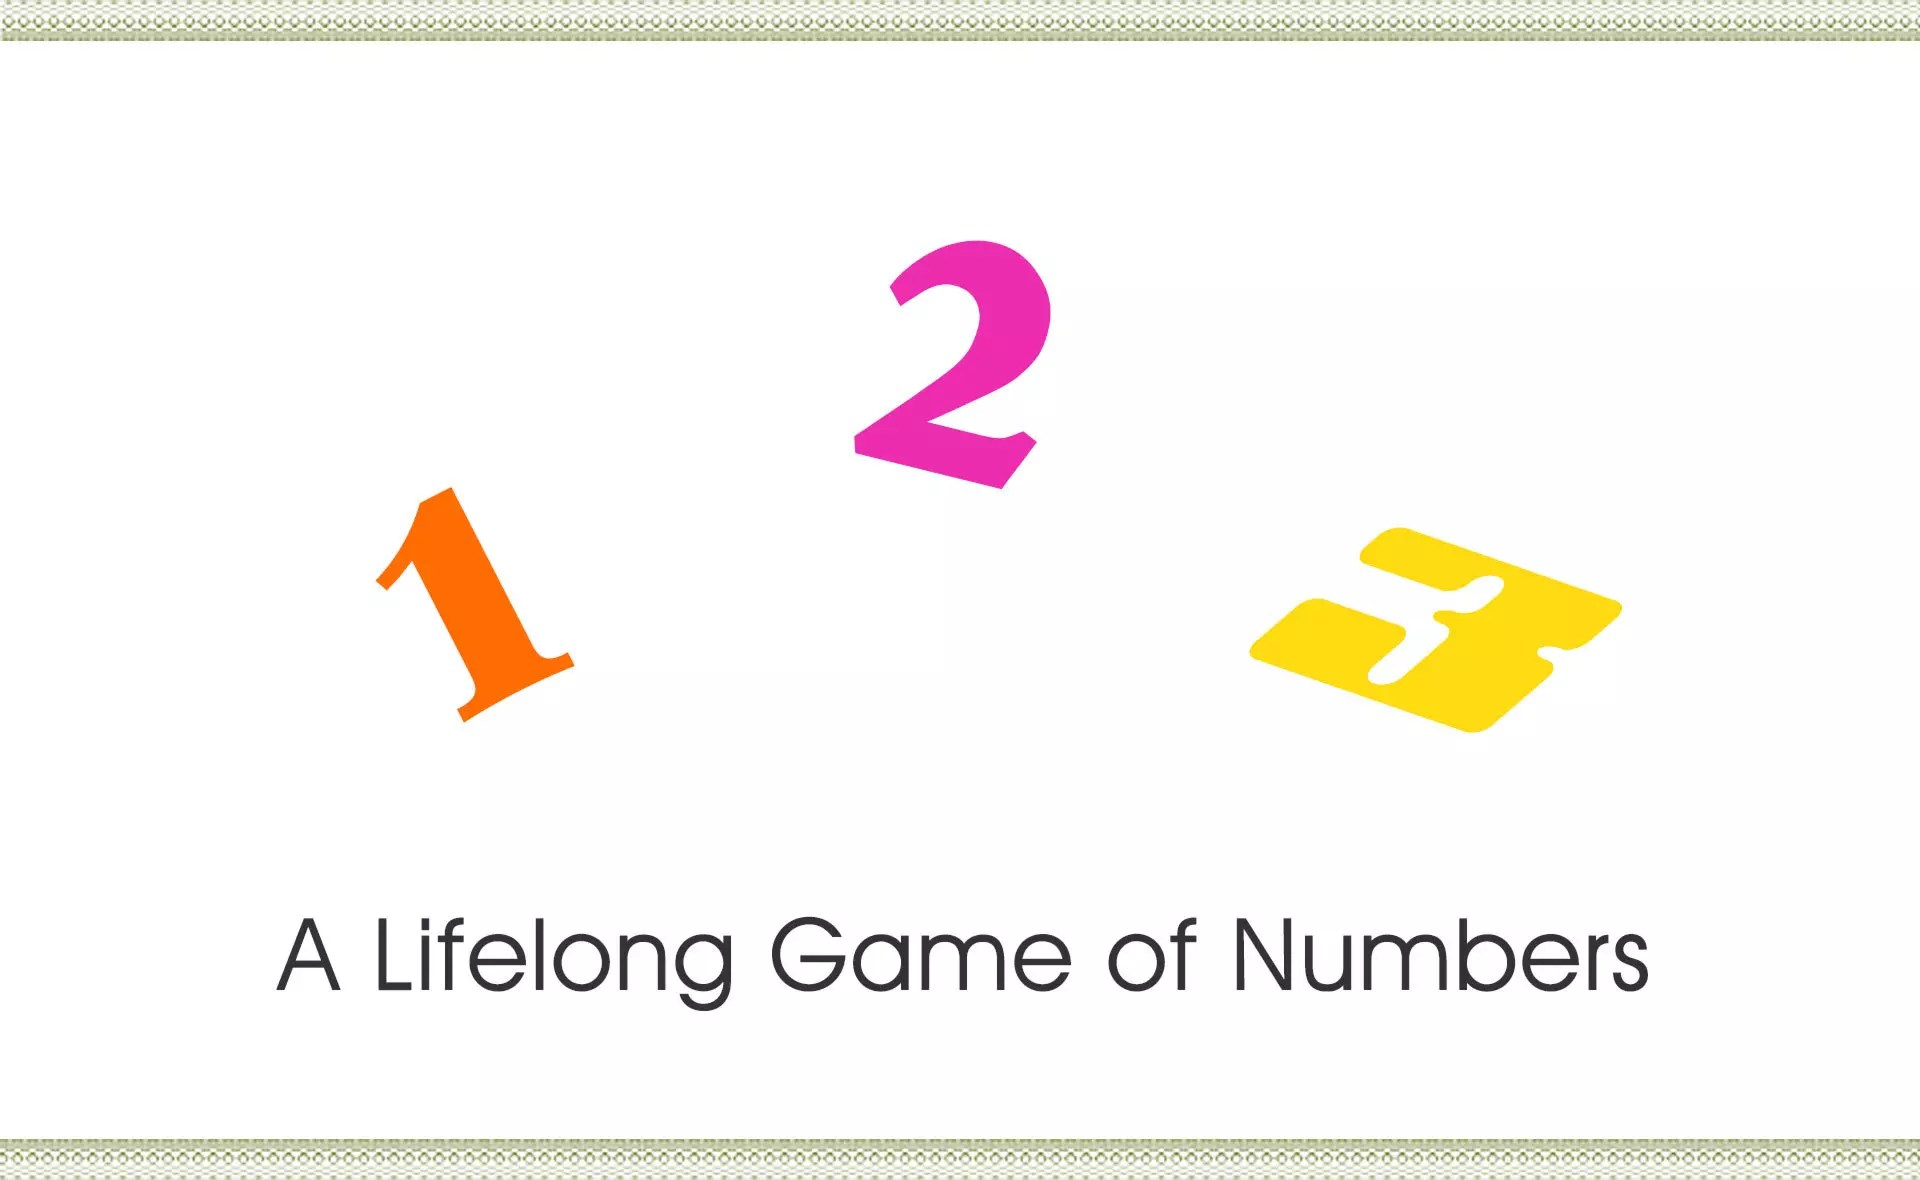 Lifelong Game of Numbers in Singapore